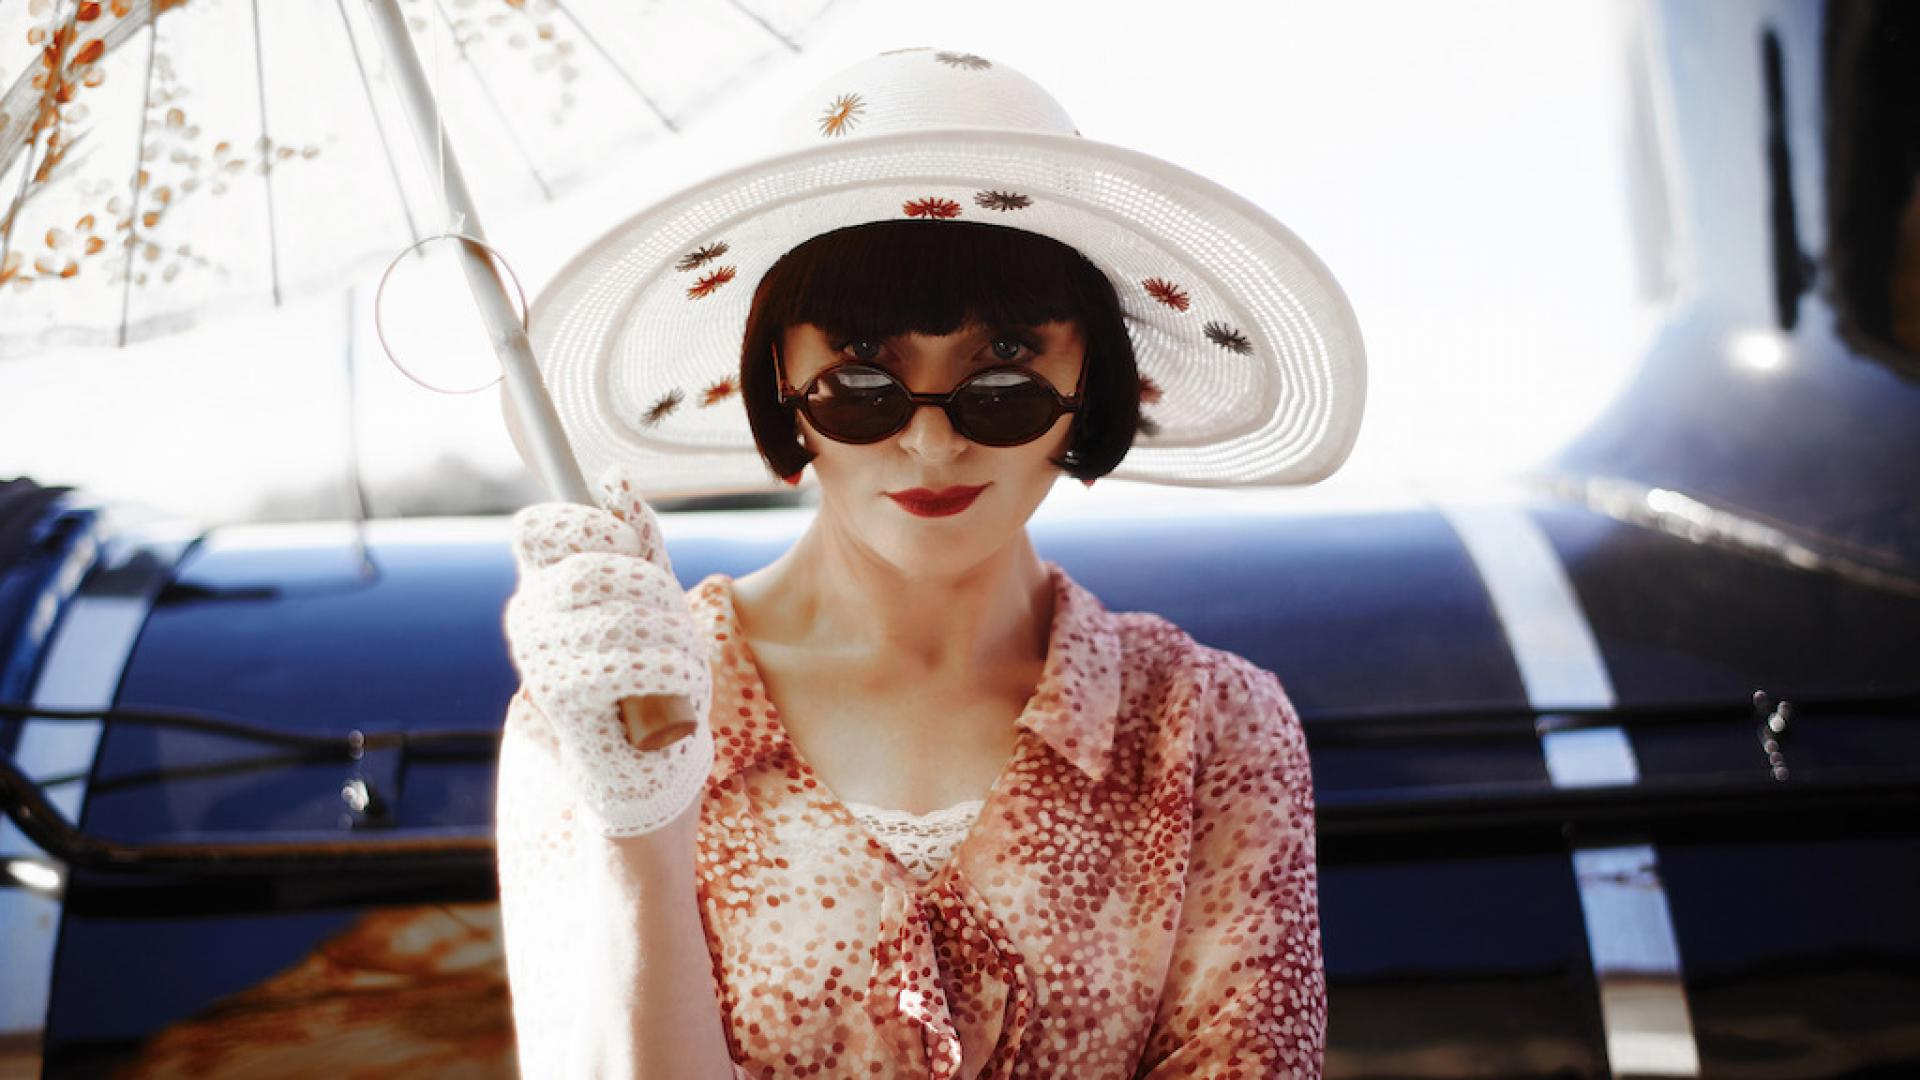 More 'Miss Fisher' Coming in 2018, As Movie Trilogy Gears Up